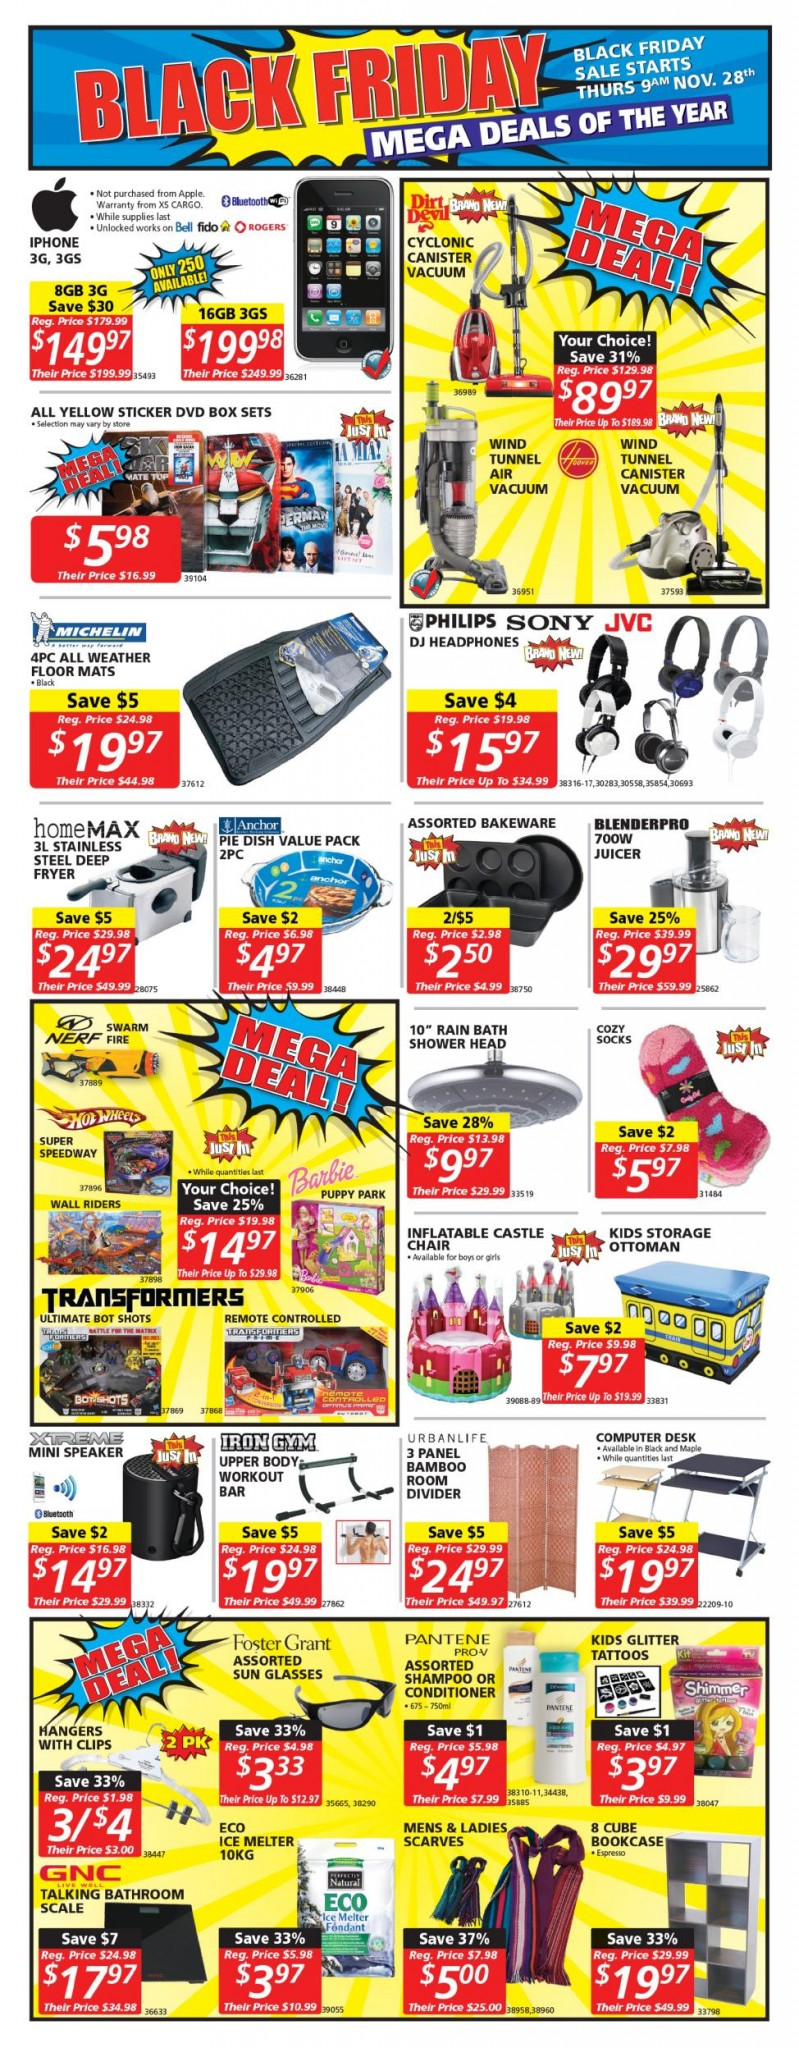 Canada black friday 2013 sales and deals flyer black for Black friday tattoo deals